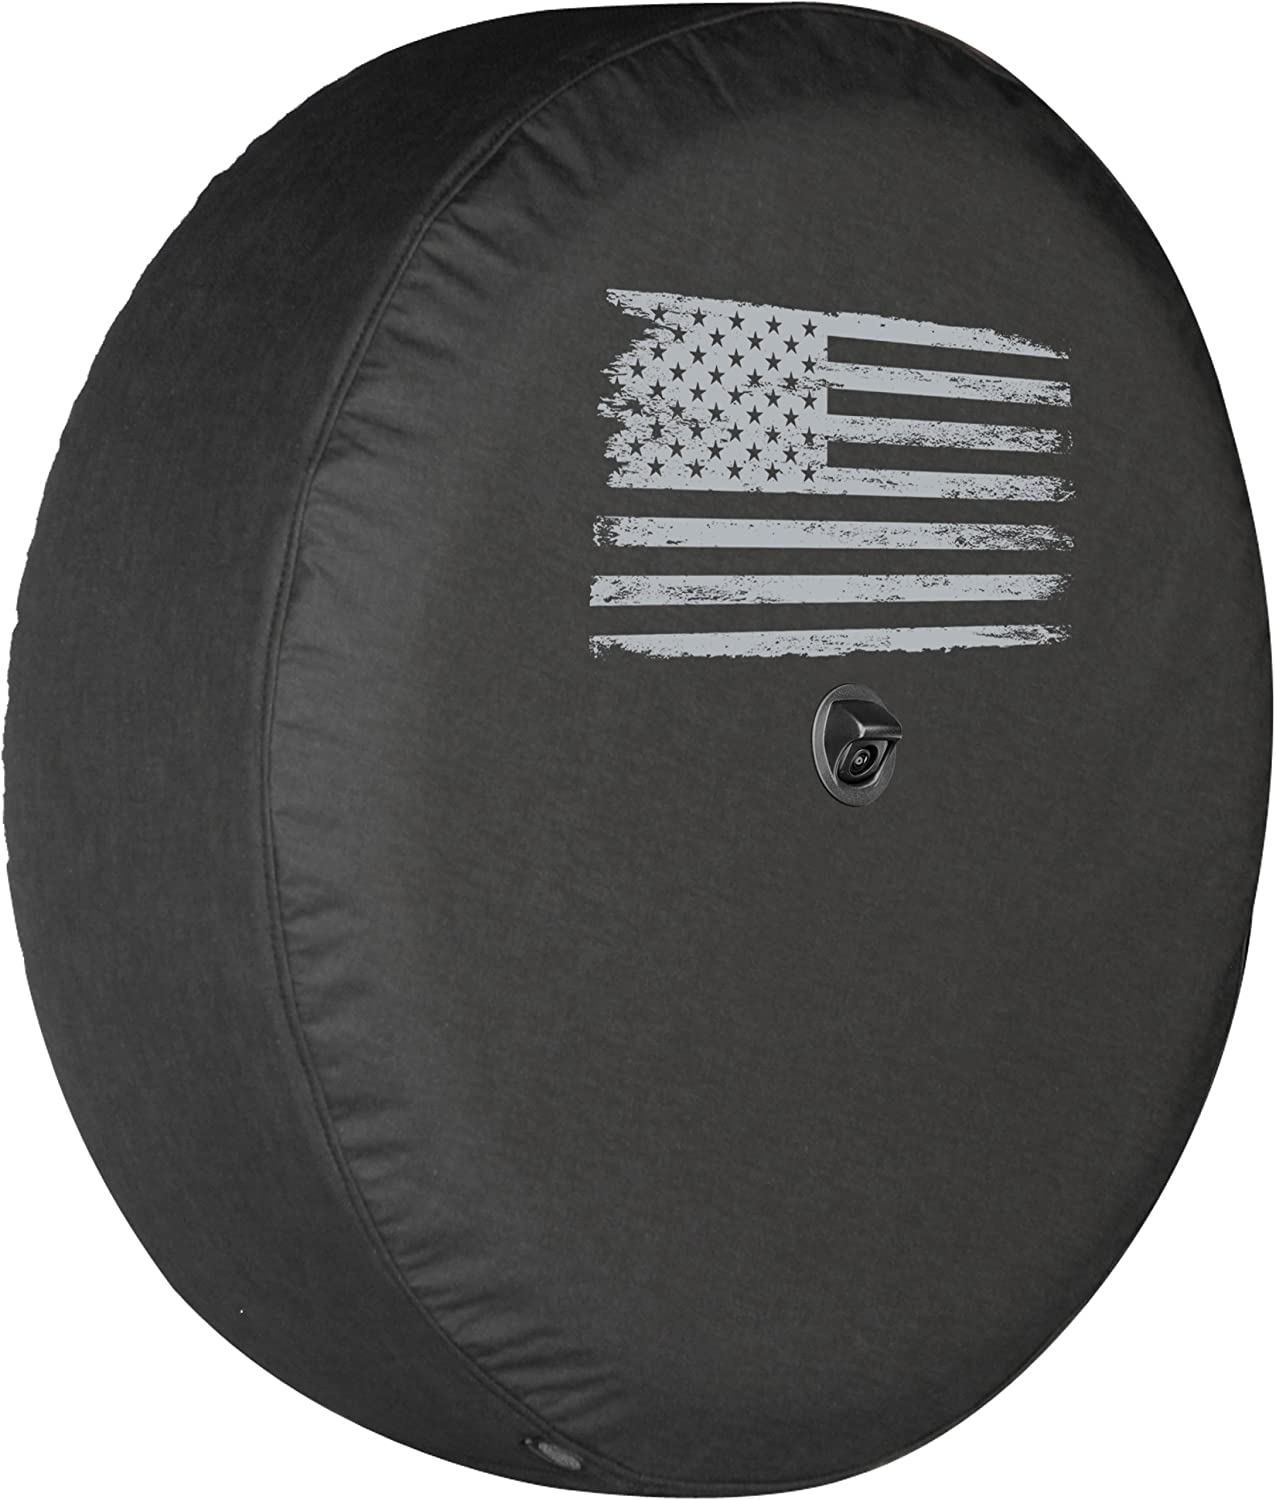 Boomerang - Distressed American Flag Soft JL Milwaukee Mall Tire Je for Cover At the price